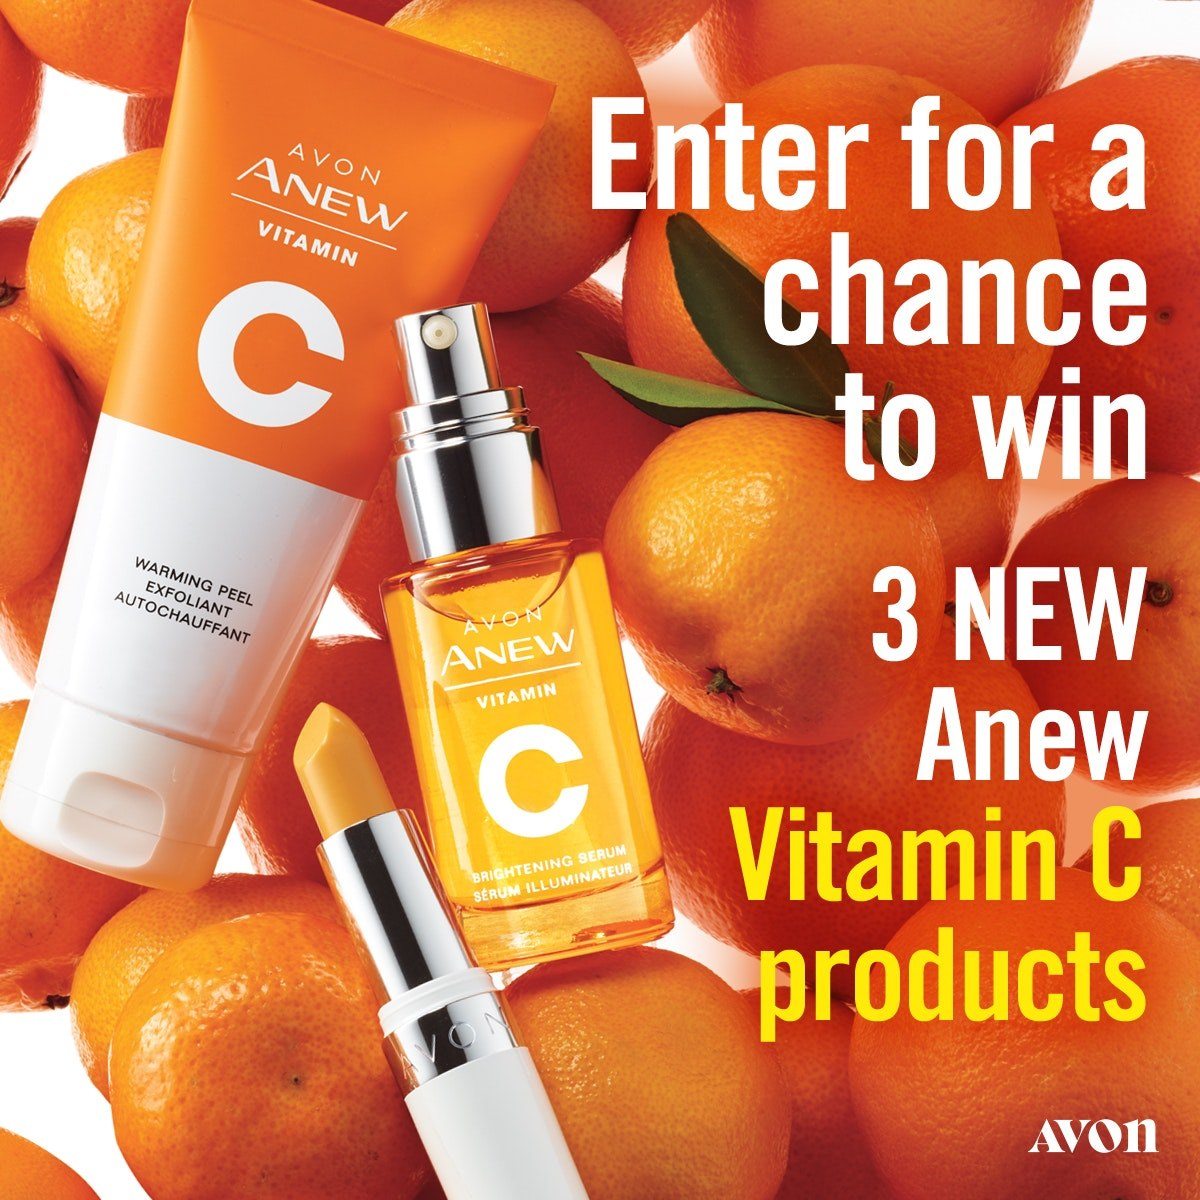 Avon Sweepstakes enter to win 3 Anew Vitamin C products. https://sweeps.youravon.com/mybeauty/vitaminc